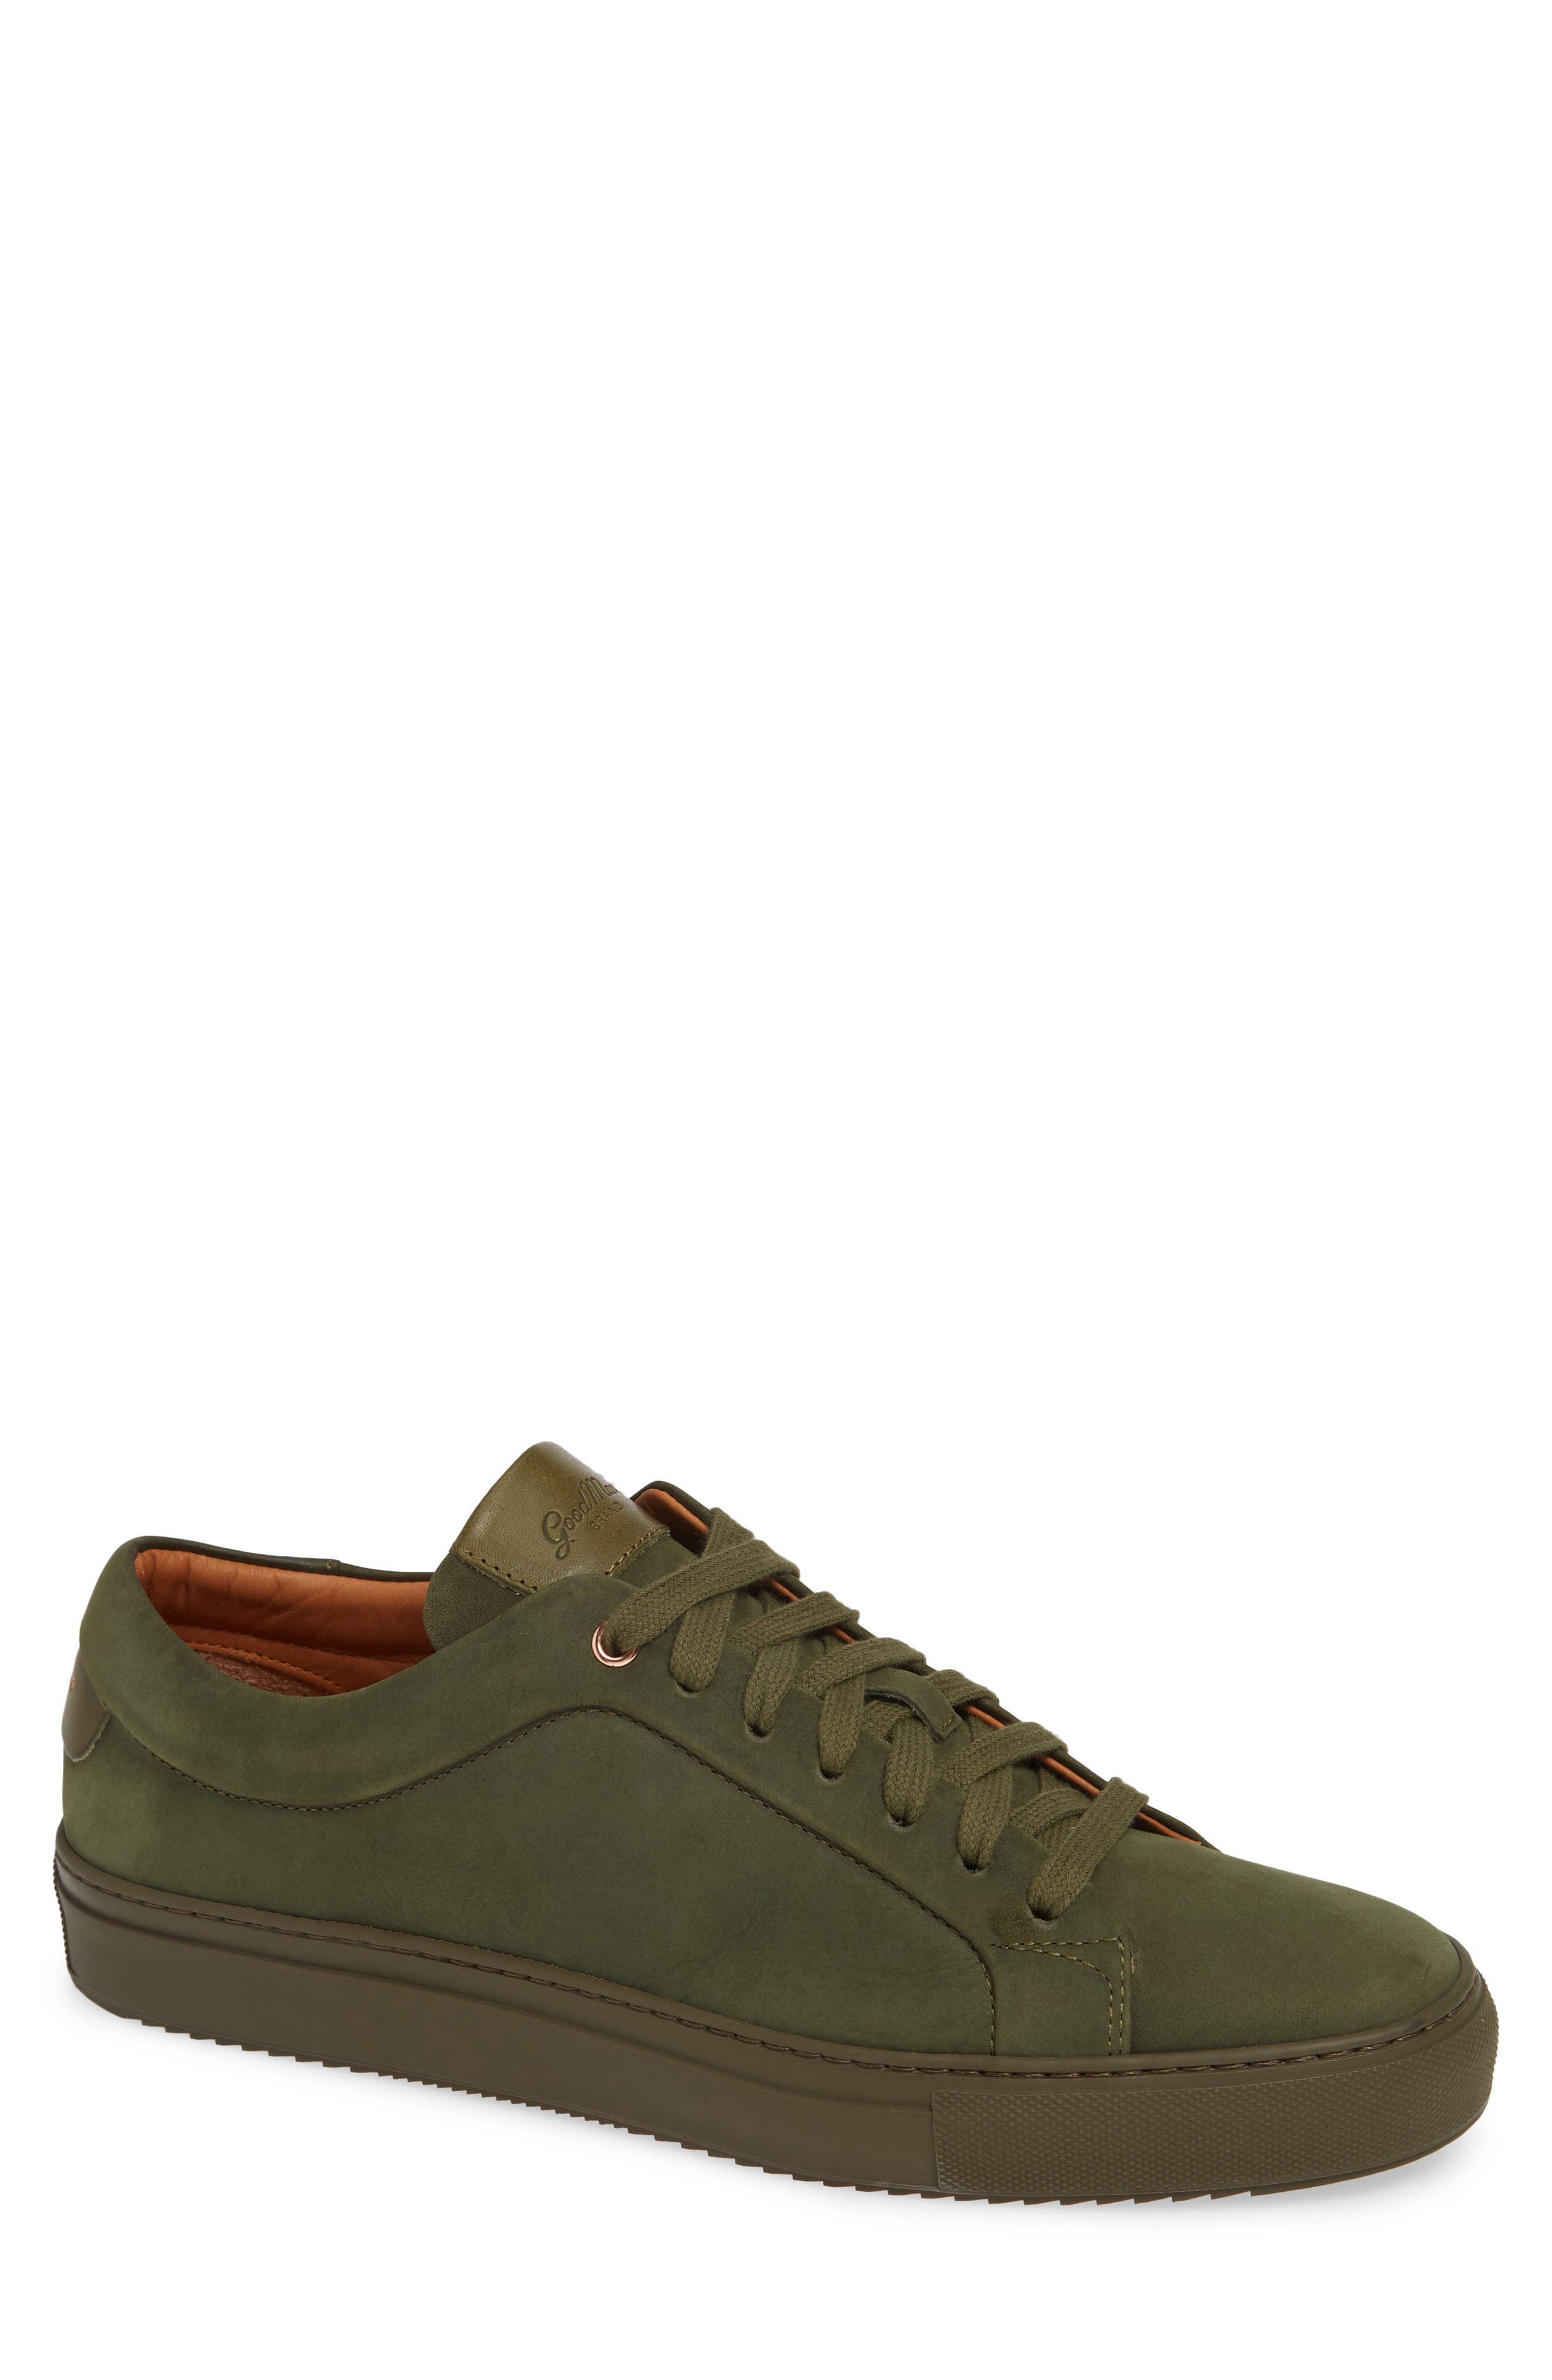 Sure Shot Lo Sneaker,                             Main thumbnail 1, color,                             MILITARY GREEN LEATHER